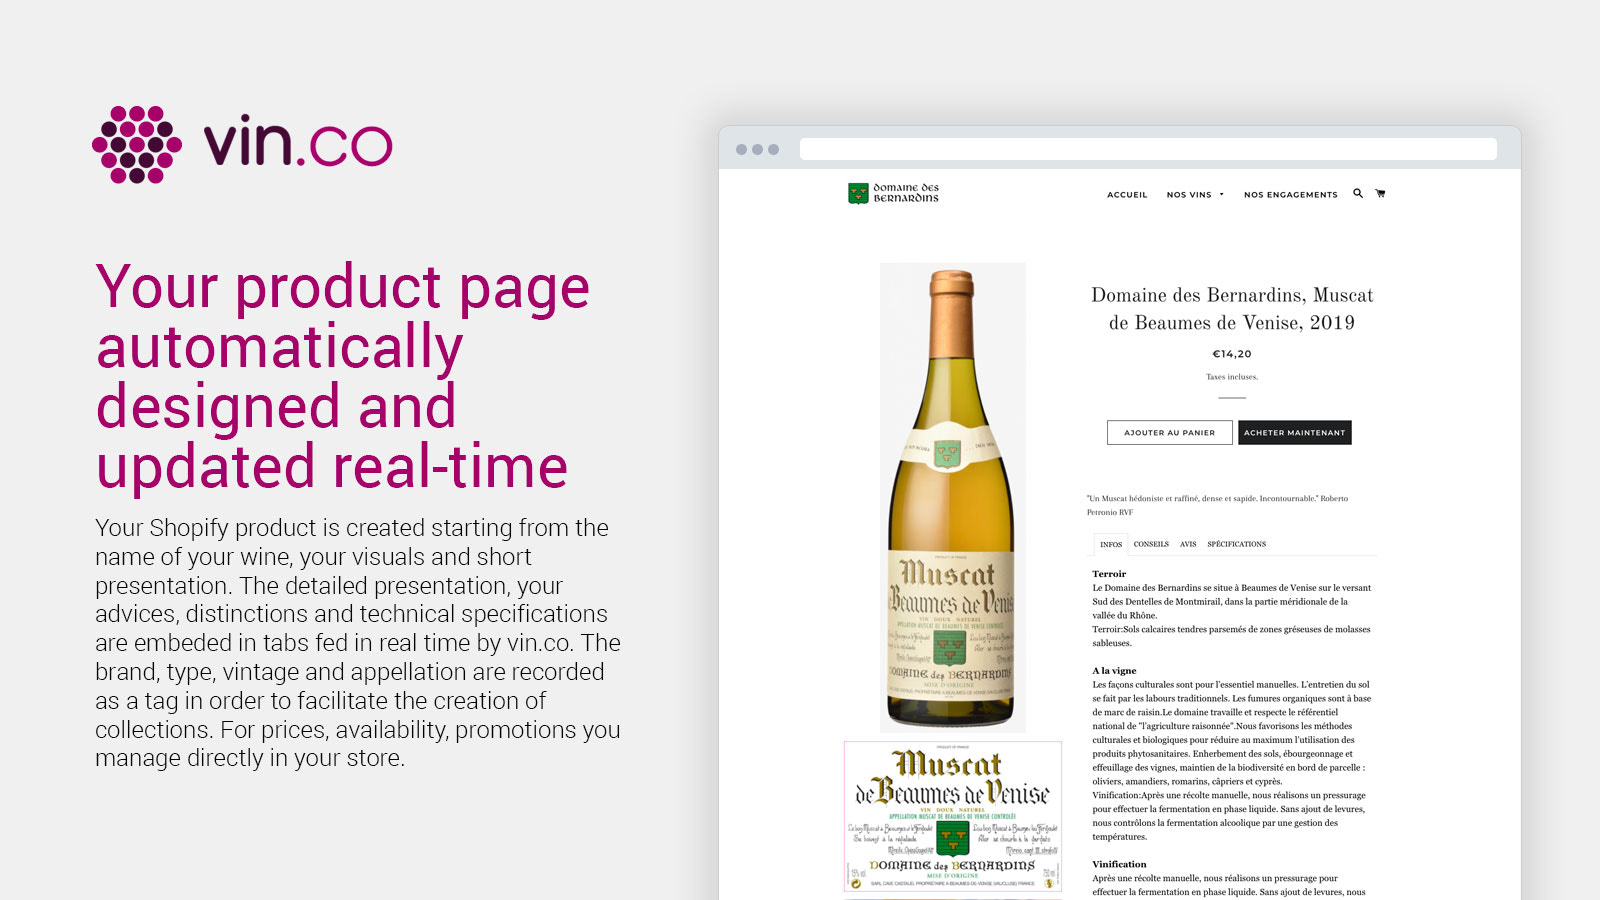 Your product page automatically redesigned and updated real-time